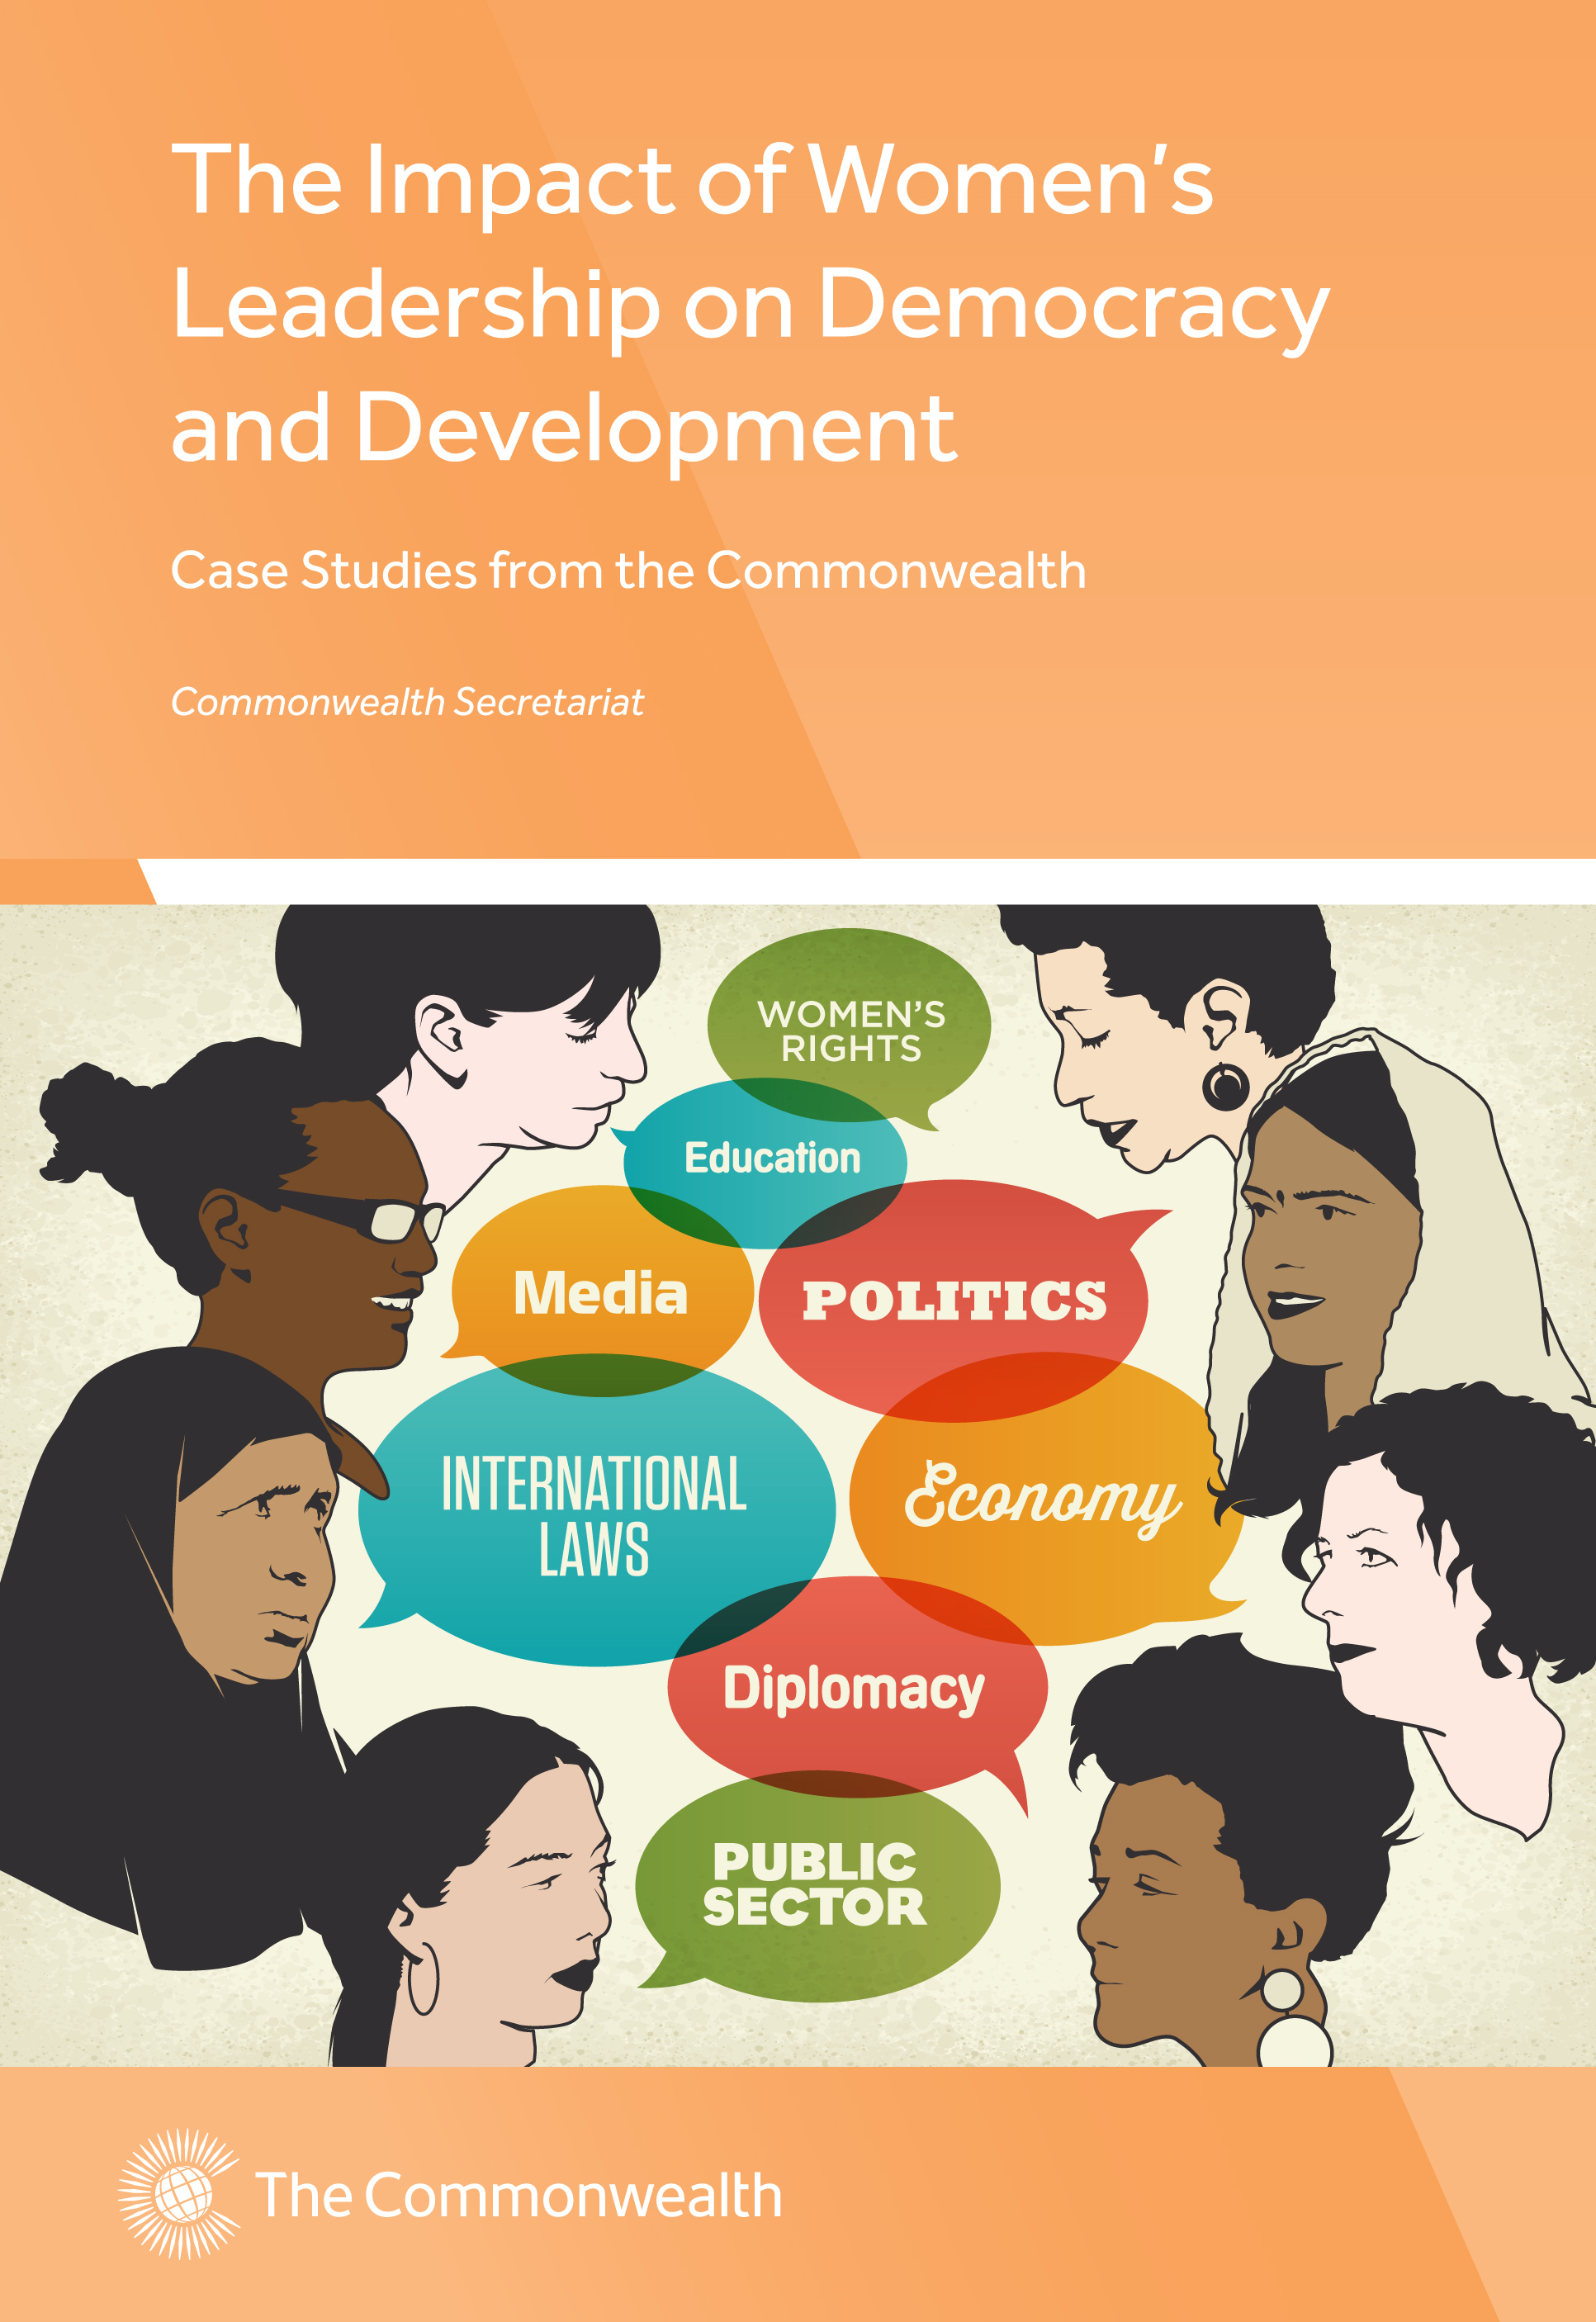 women in political leadership Civic engagement and political leadership among women – a call for solutions this fact sheet reflects remarks by author kei kawashima-ginsberg at an april 22, 2013.